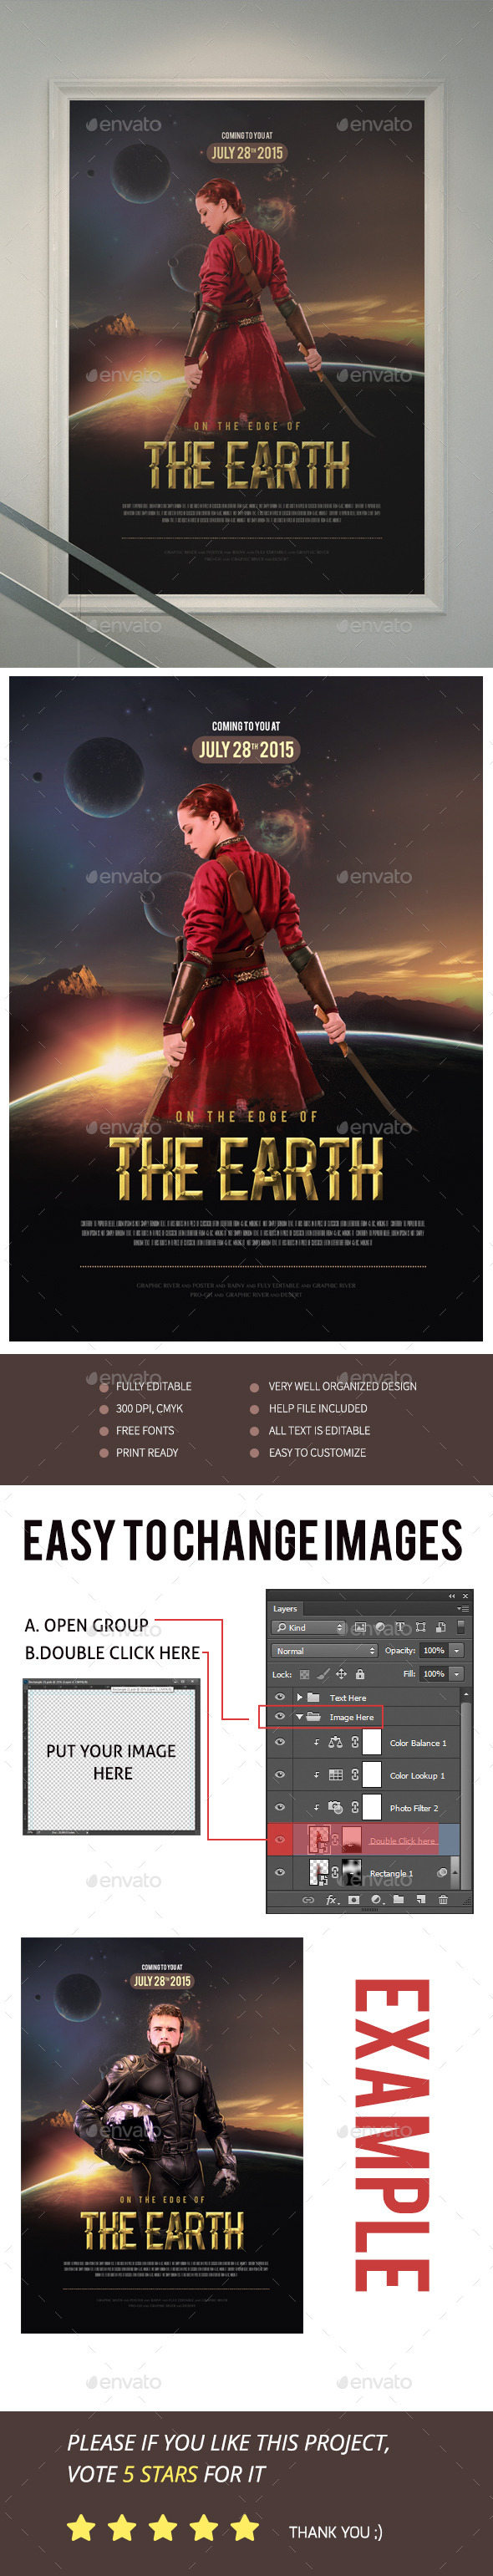 On The Edge Of The Earth Movie Poster/Flyer - Events Flyers